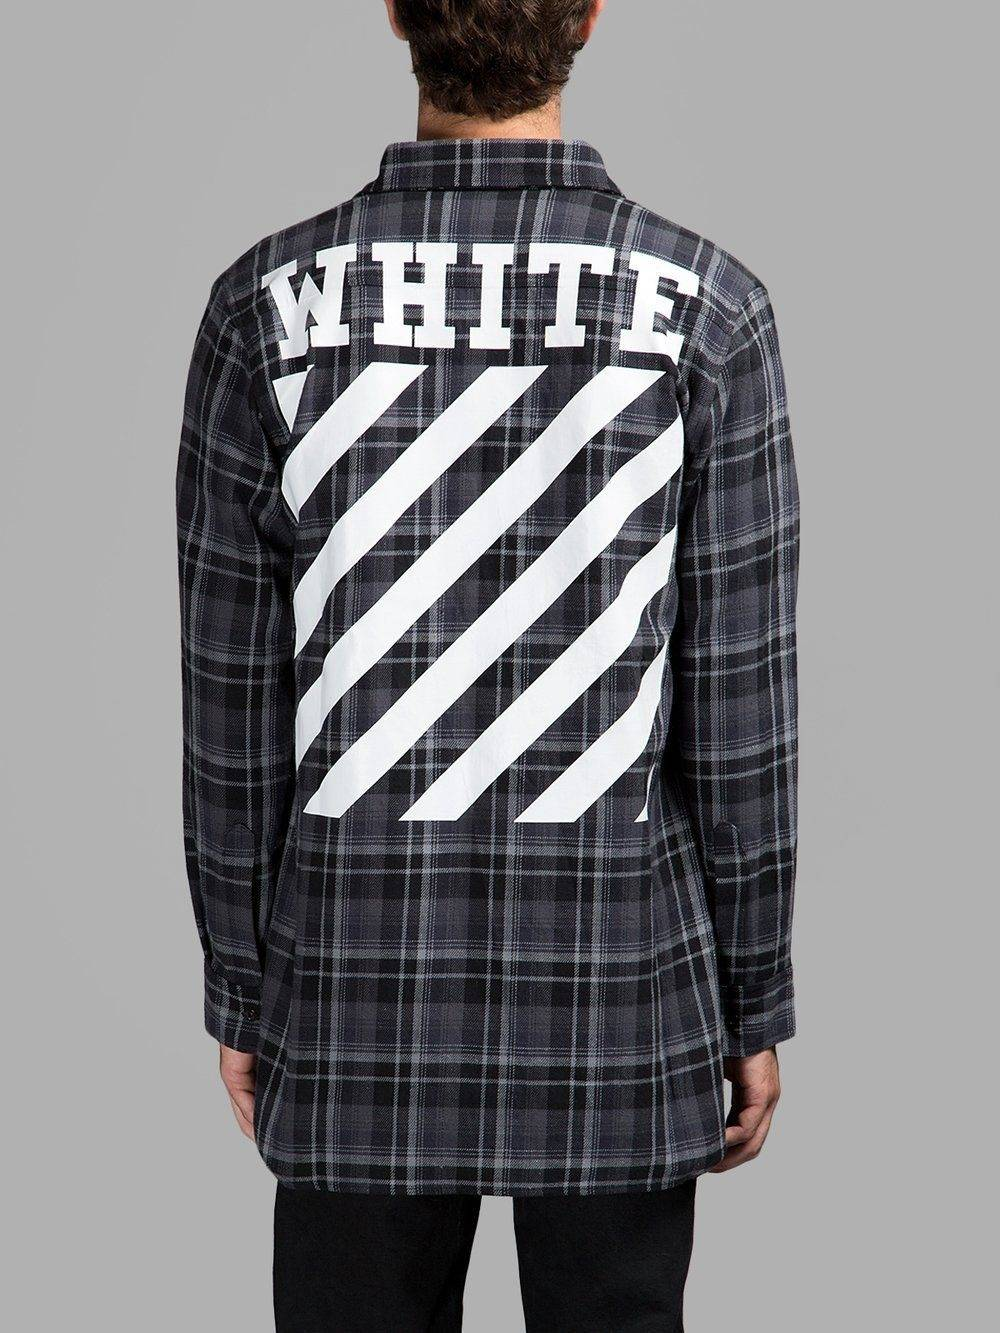 Image result for off white flannel